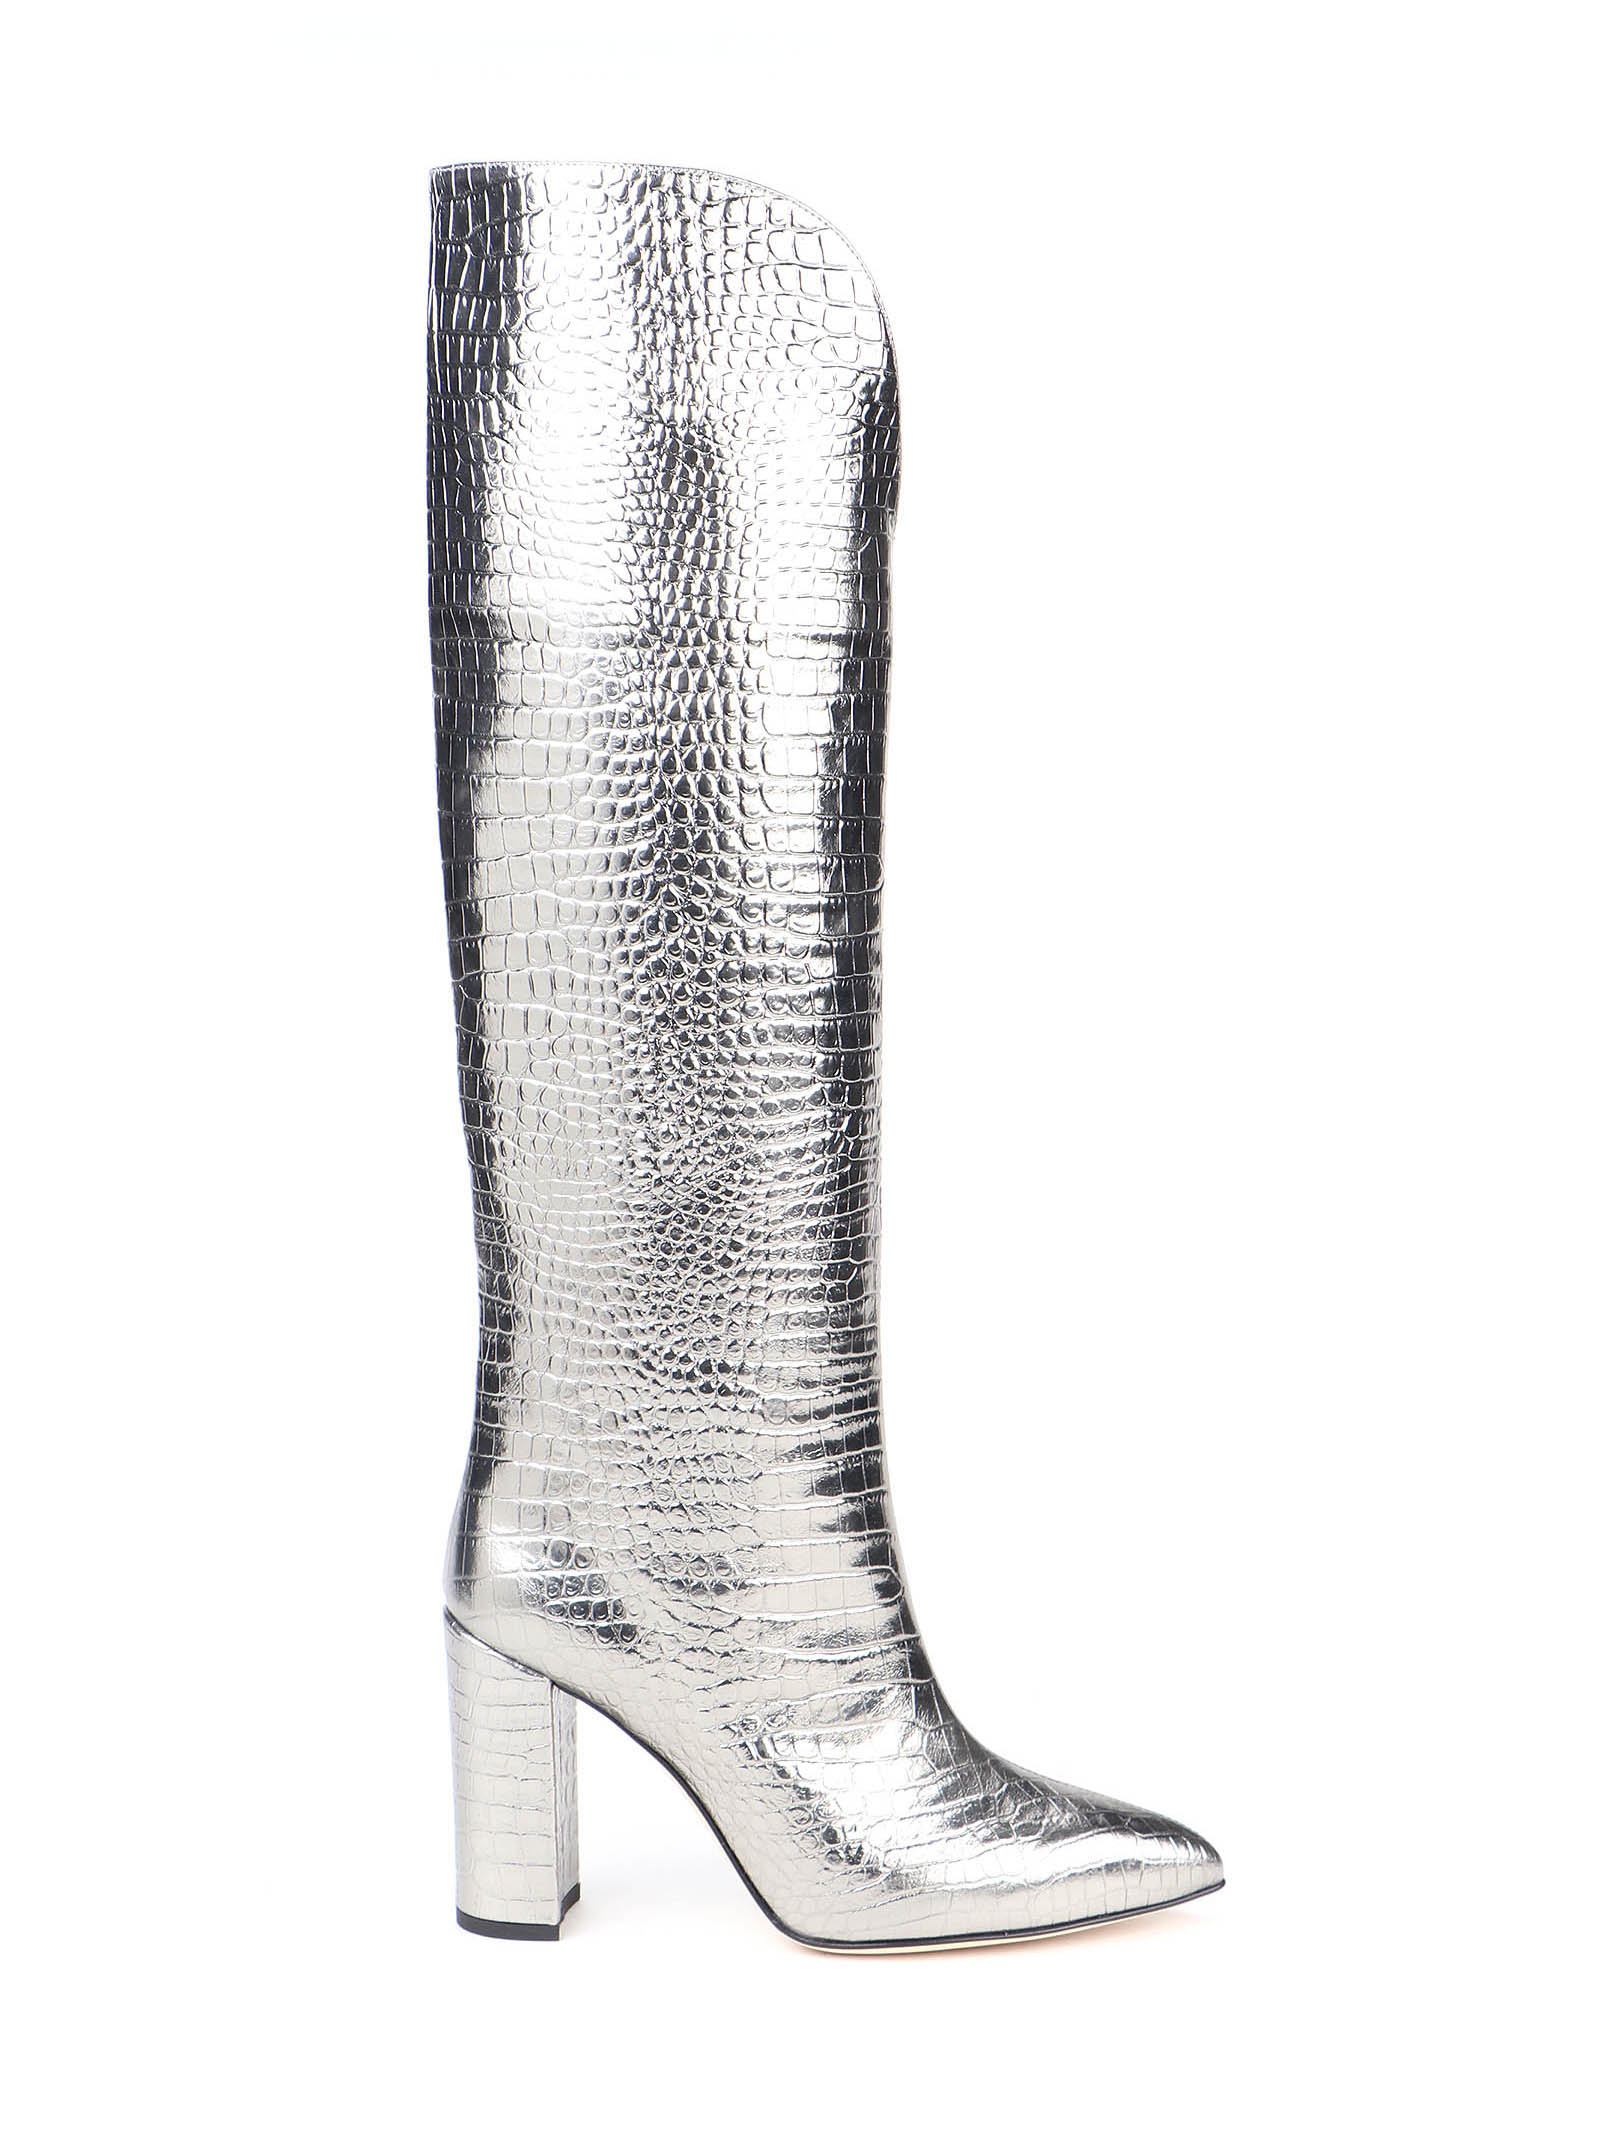 Picture of Paris Texas | Croc Embossed Boots